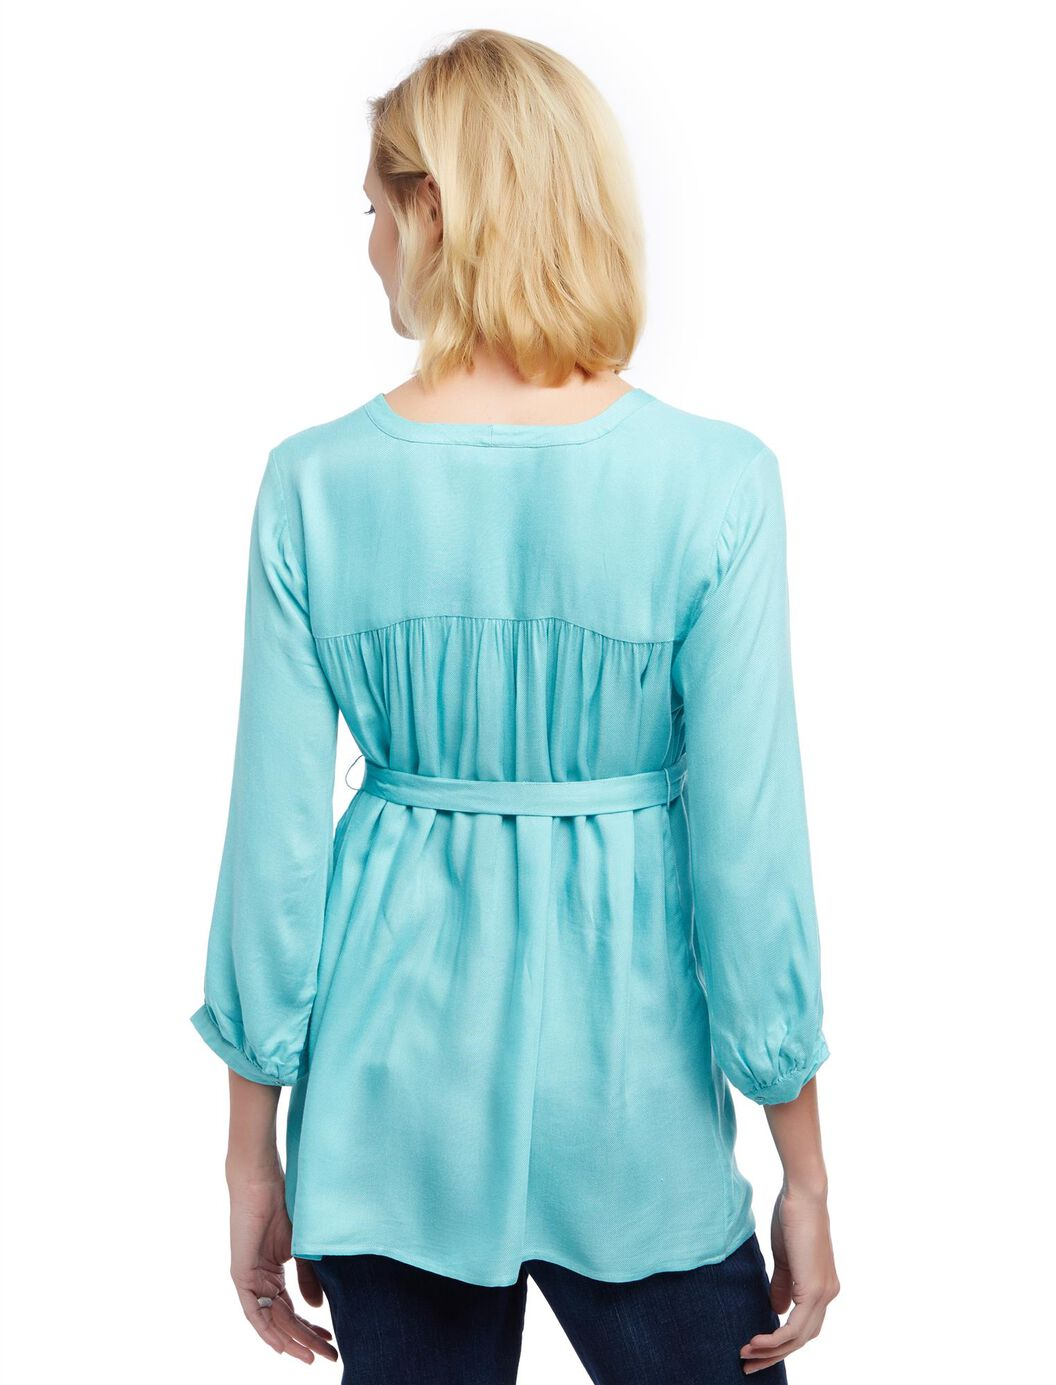 Button detail maternity blouse turquoise motherhood for 99420